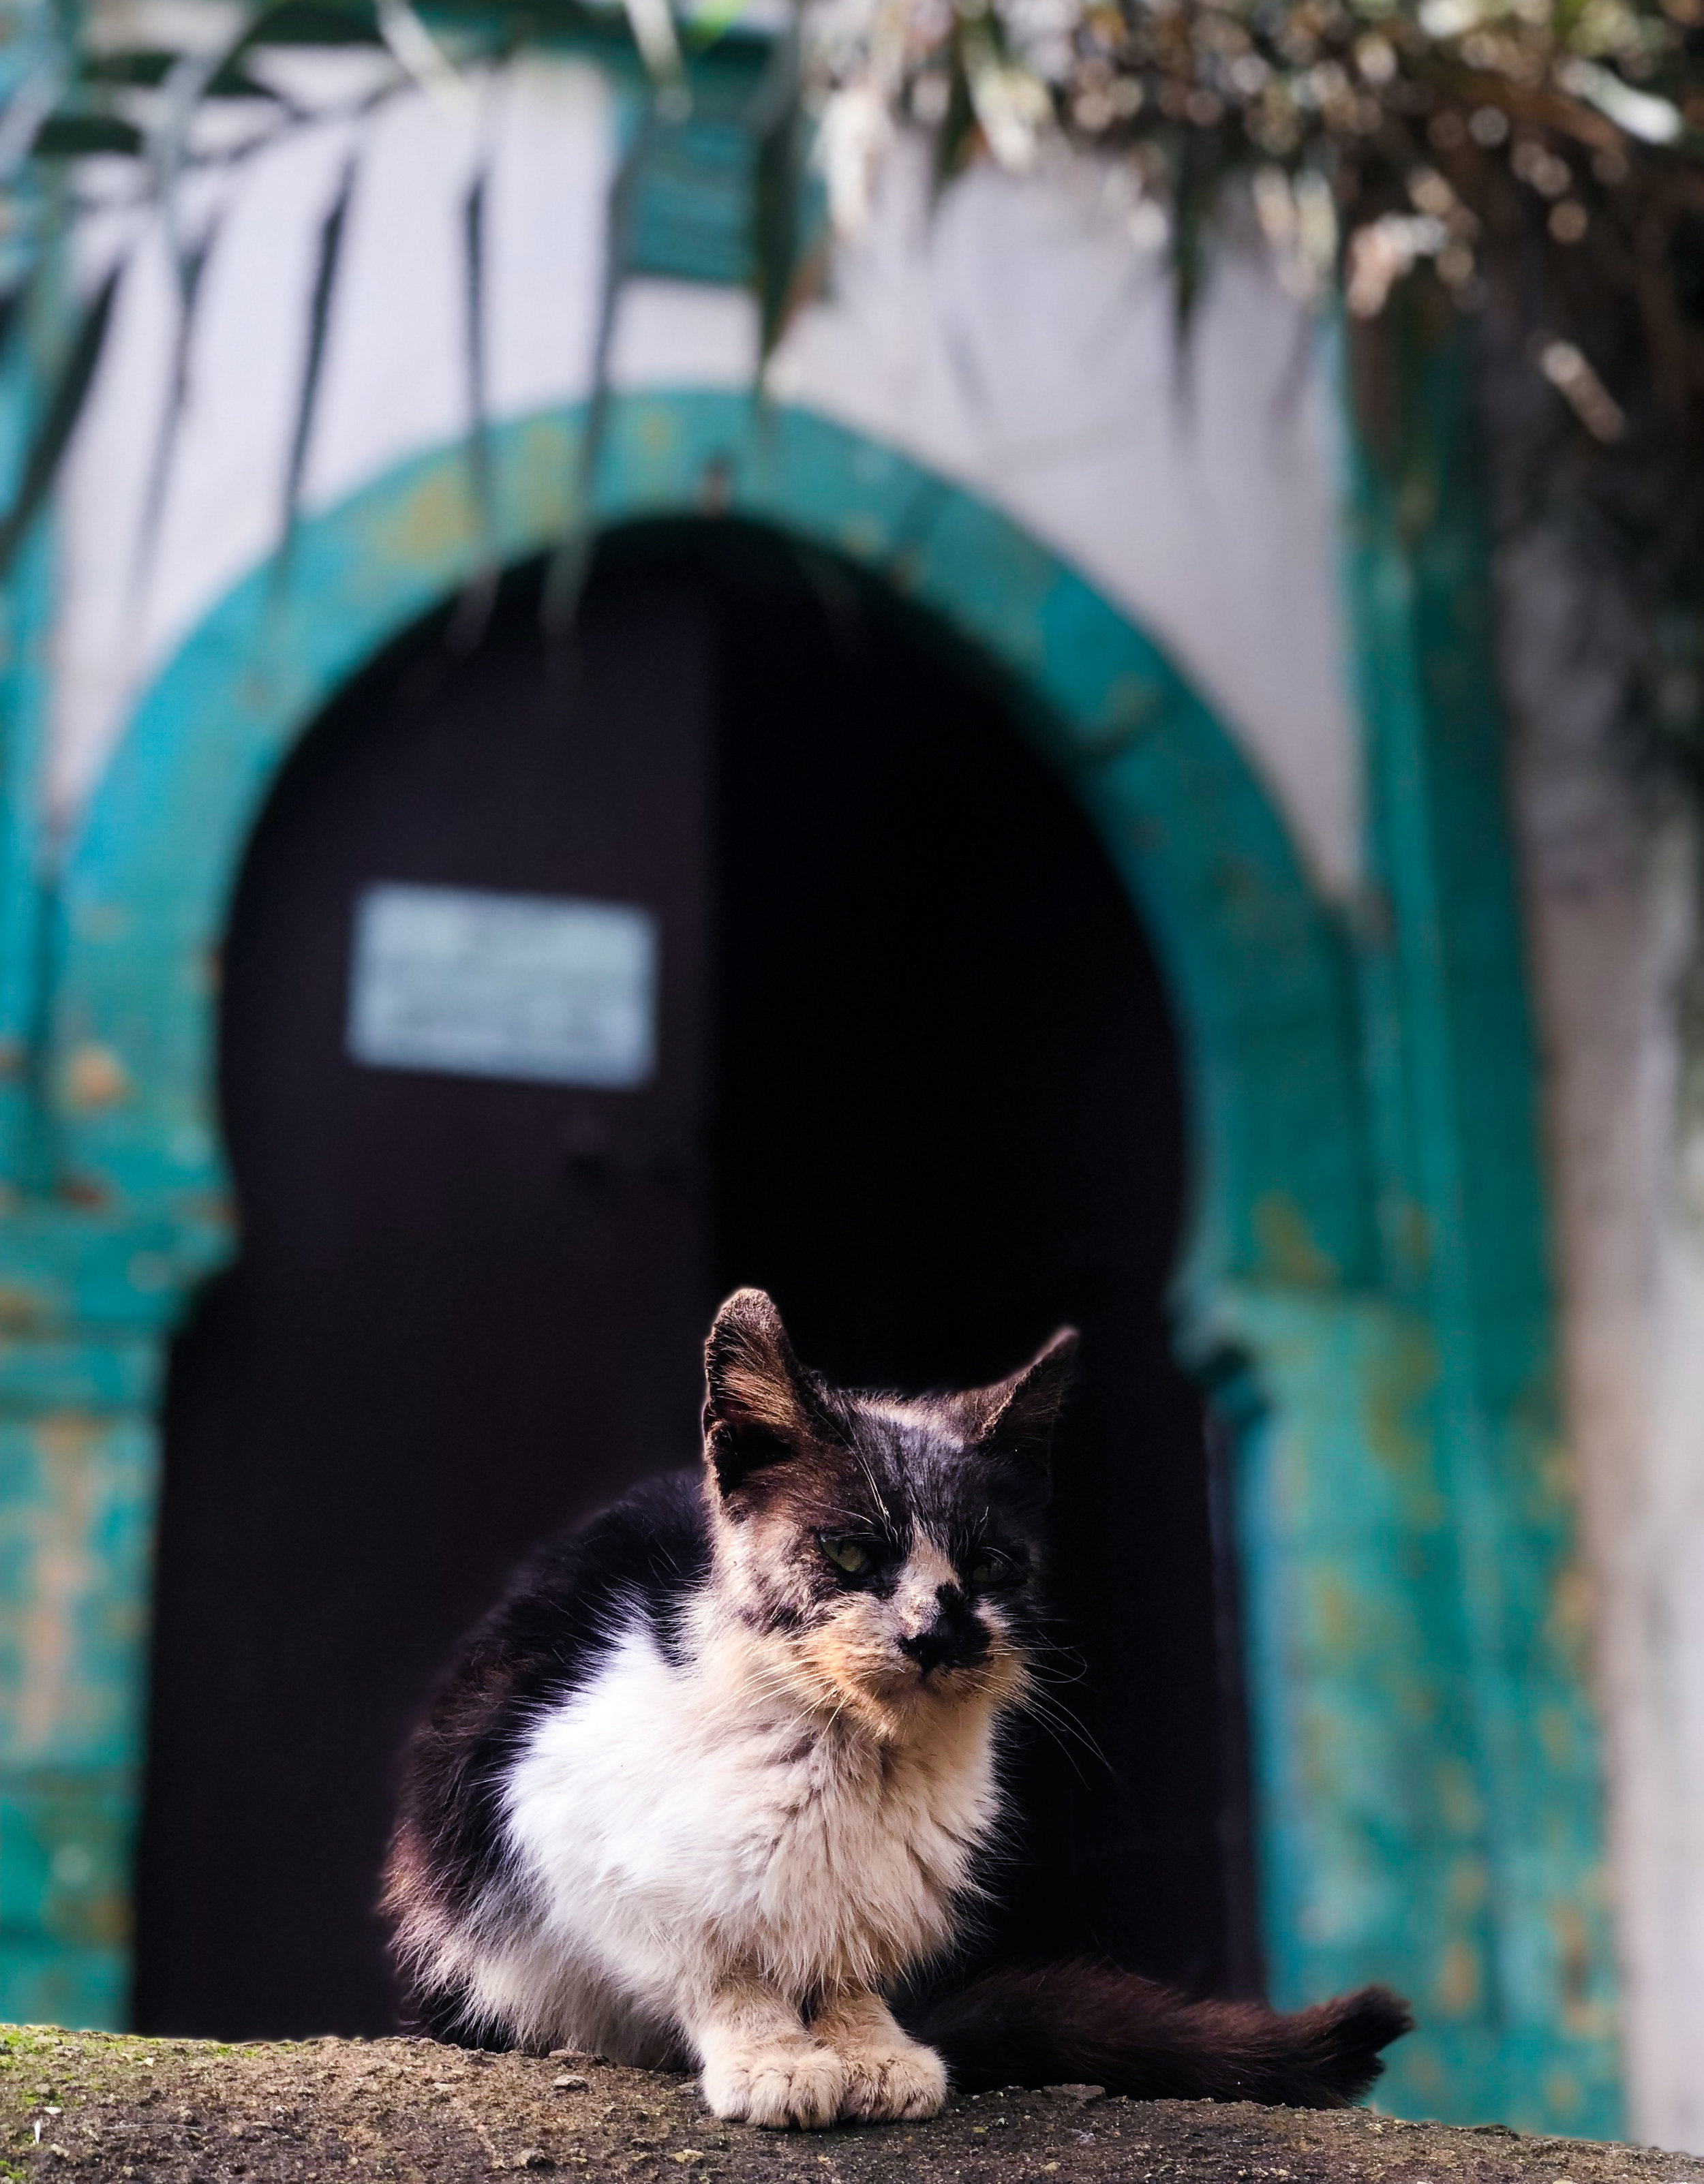 The relationship between Moroccans and cats throughout the city is an interesting one. While some children may shy away, scared of an unfamiliar animal (pets are significantly less common here than in the United States), or some adults may regard them as dirty, they're still widely respected. I've seen many Moroccans set up outdoor shelters, provide food, and sometimes even play with them. Seemingly everywhere in Morocco, street cats are particularly common in the gardens of Chellah, a ruined Islamic necropolis and former Roman colony, which is now a World Heritage site. Chellah also has ancient connections as a Phoenician settlement, all of which makes it one of the most toured attractions of Rabat. Here in this photo, one of the many cats in the garden is perched in front of a blue door. Doors with this distinct keyhole shape are common in classic Islamic architecture, and can be found all across the city. Photo Credit: J. Miller, Fall 2018